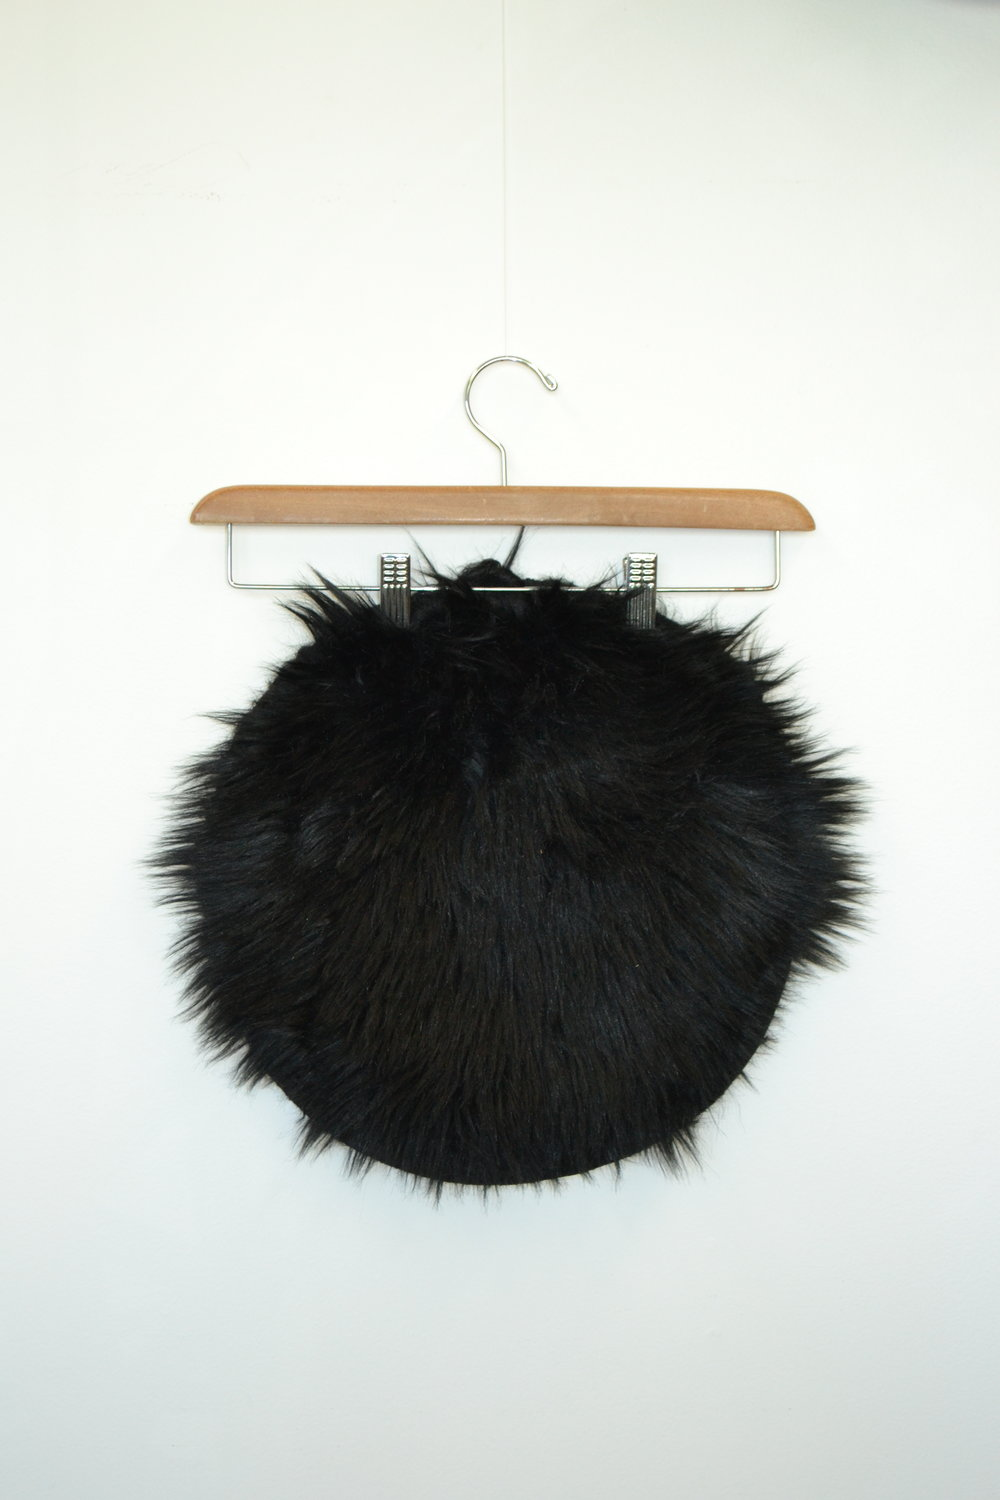 faux-fur stool cover - black   Quantity: 1  Price: $3.50